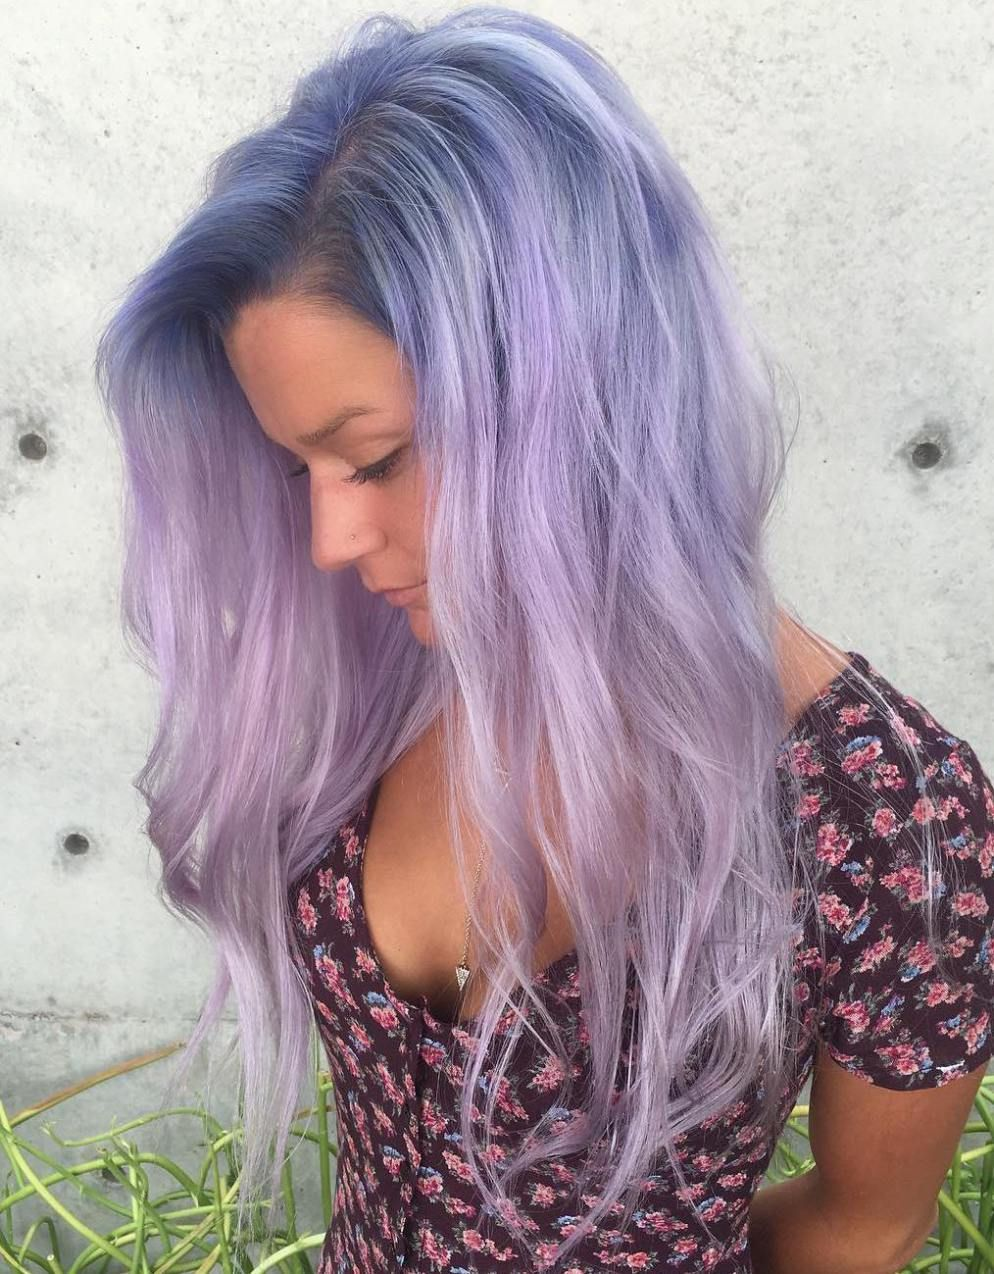 Watch Hair Color Ideas: 20 Gorgeous Pastel Purple Hairstyles video